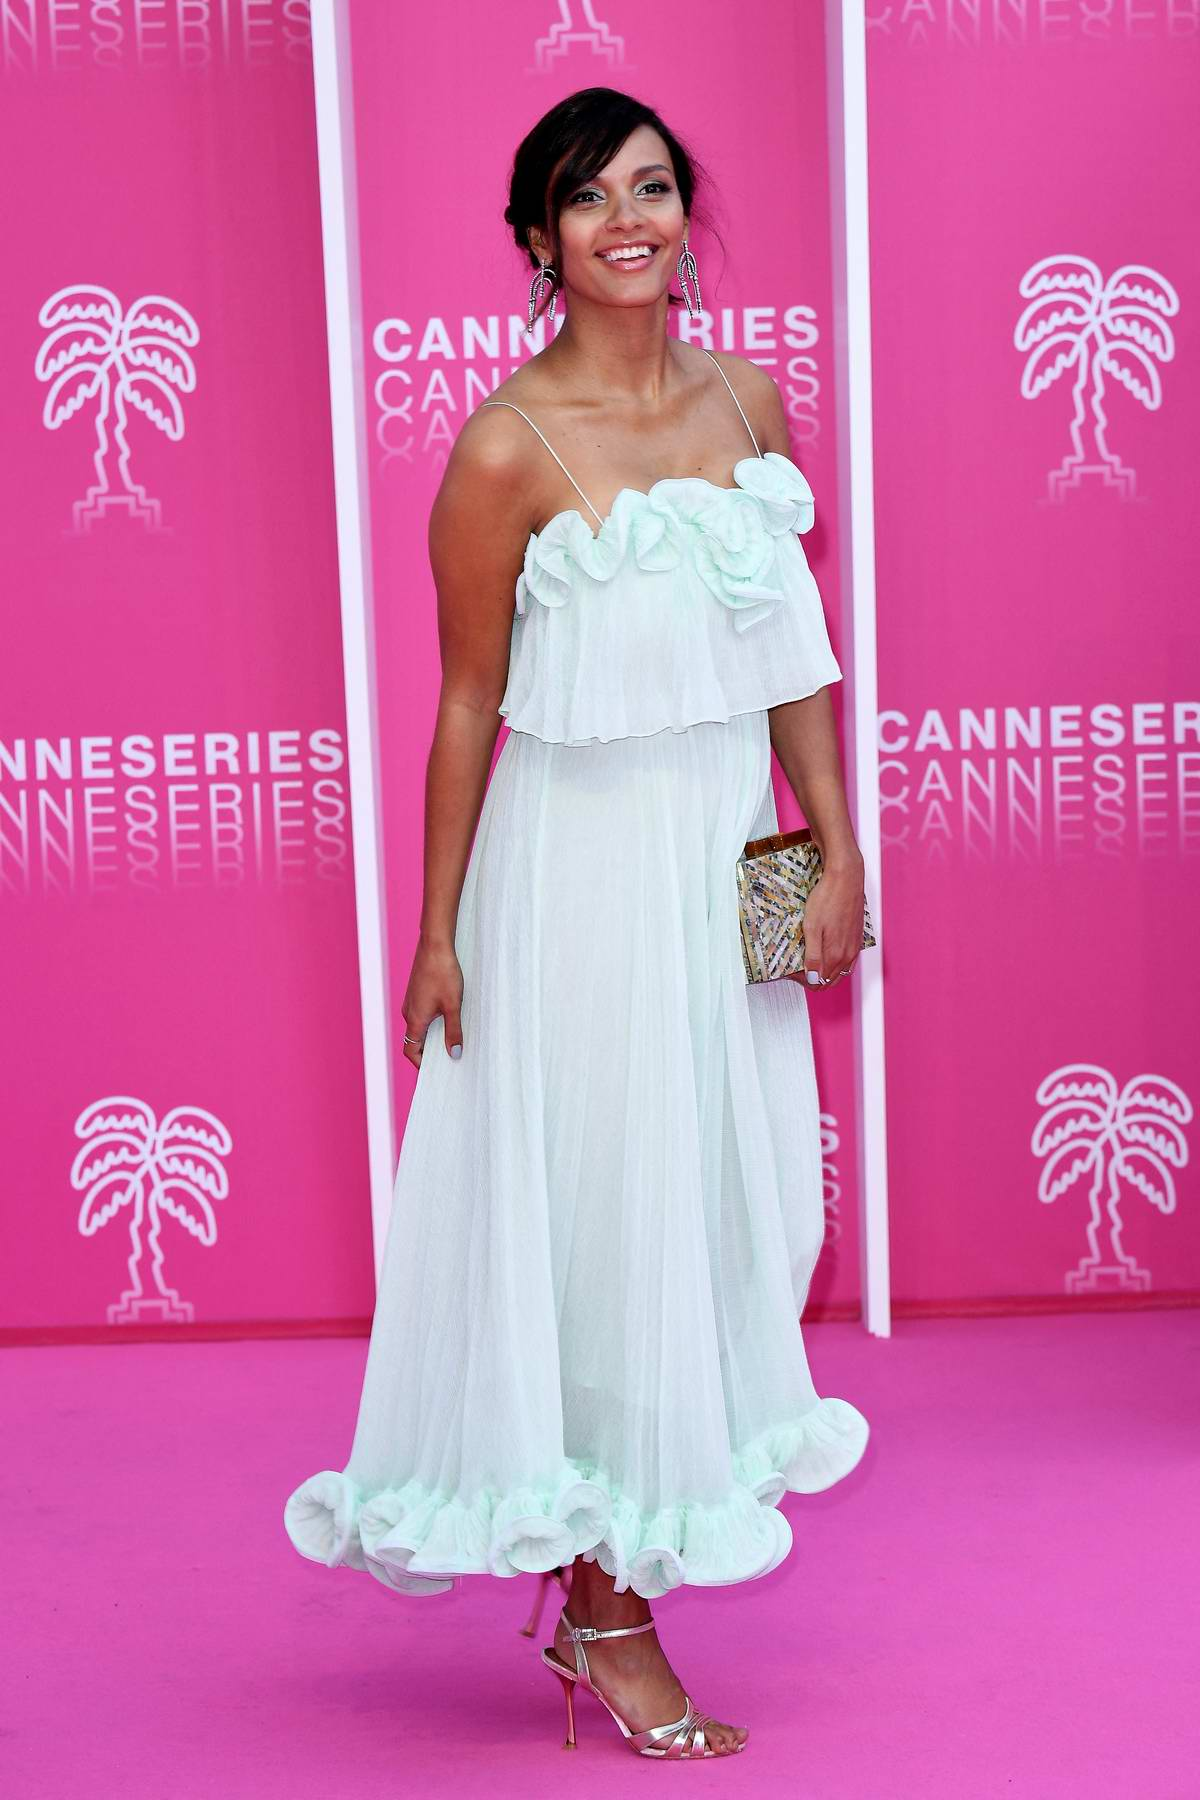 Jessica Lucas at the Pink Carpet during the 2nd Canneseries - International Series Festival - Day 5 in Cannes, France